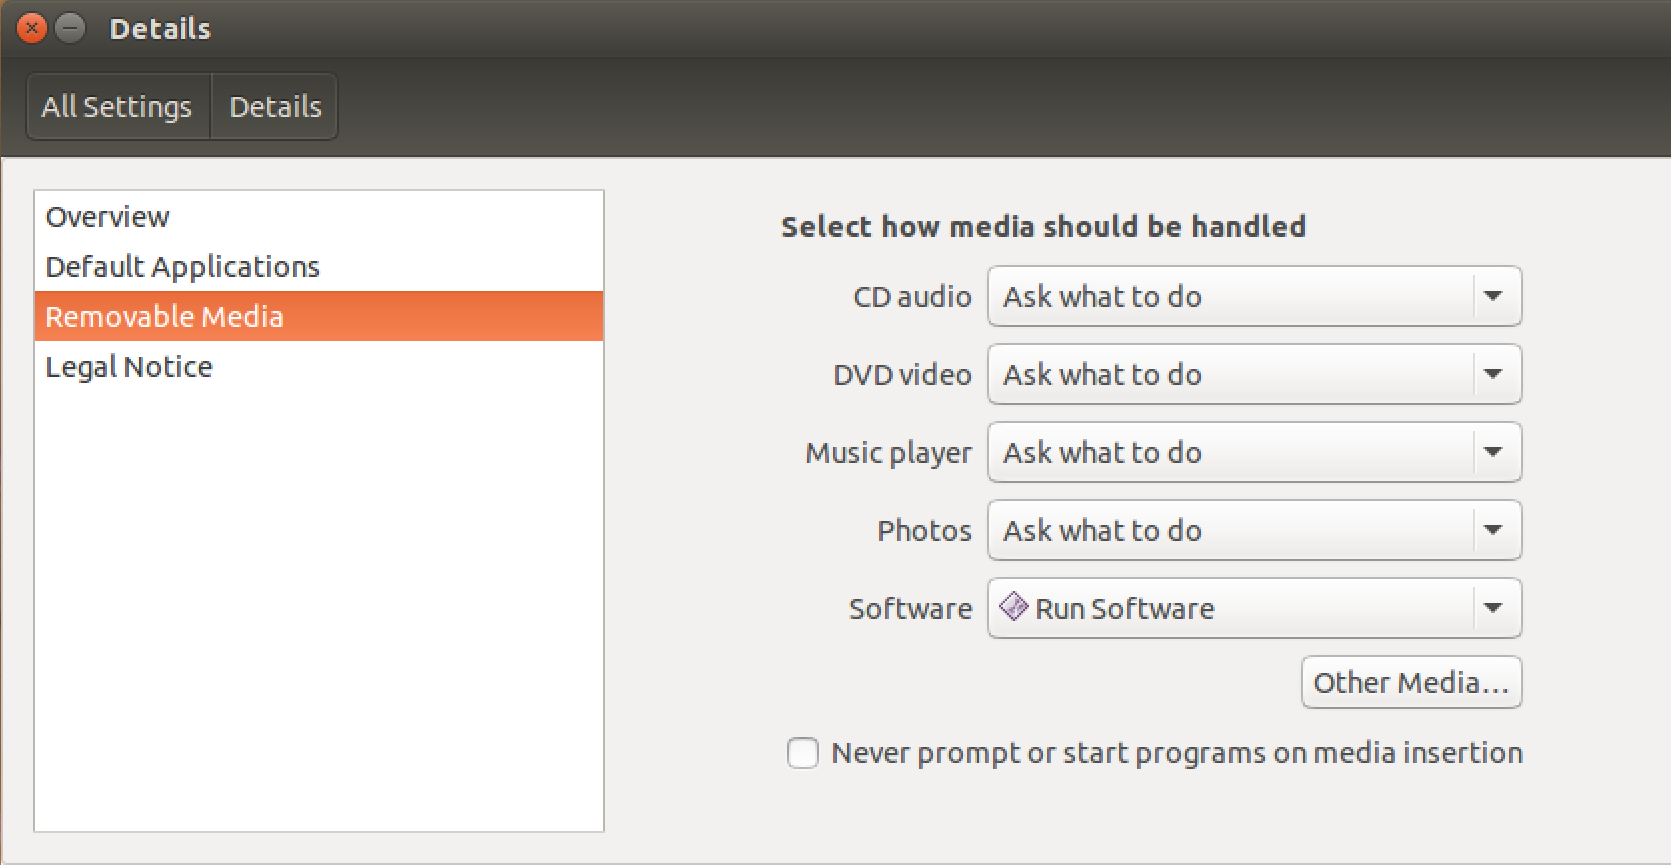 ubuntu linux removable media actions settings preferences